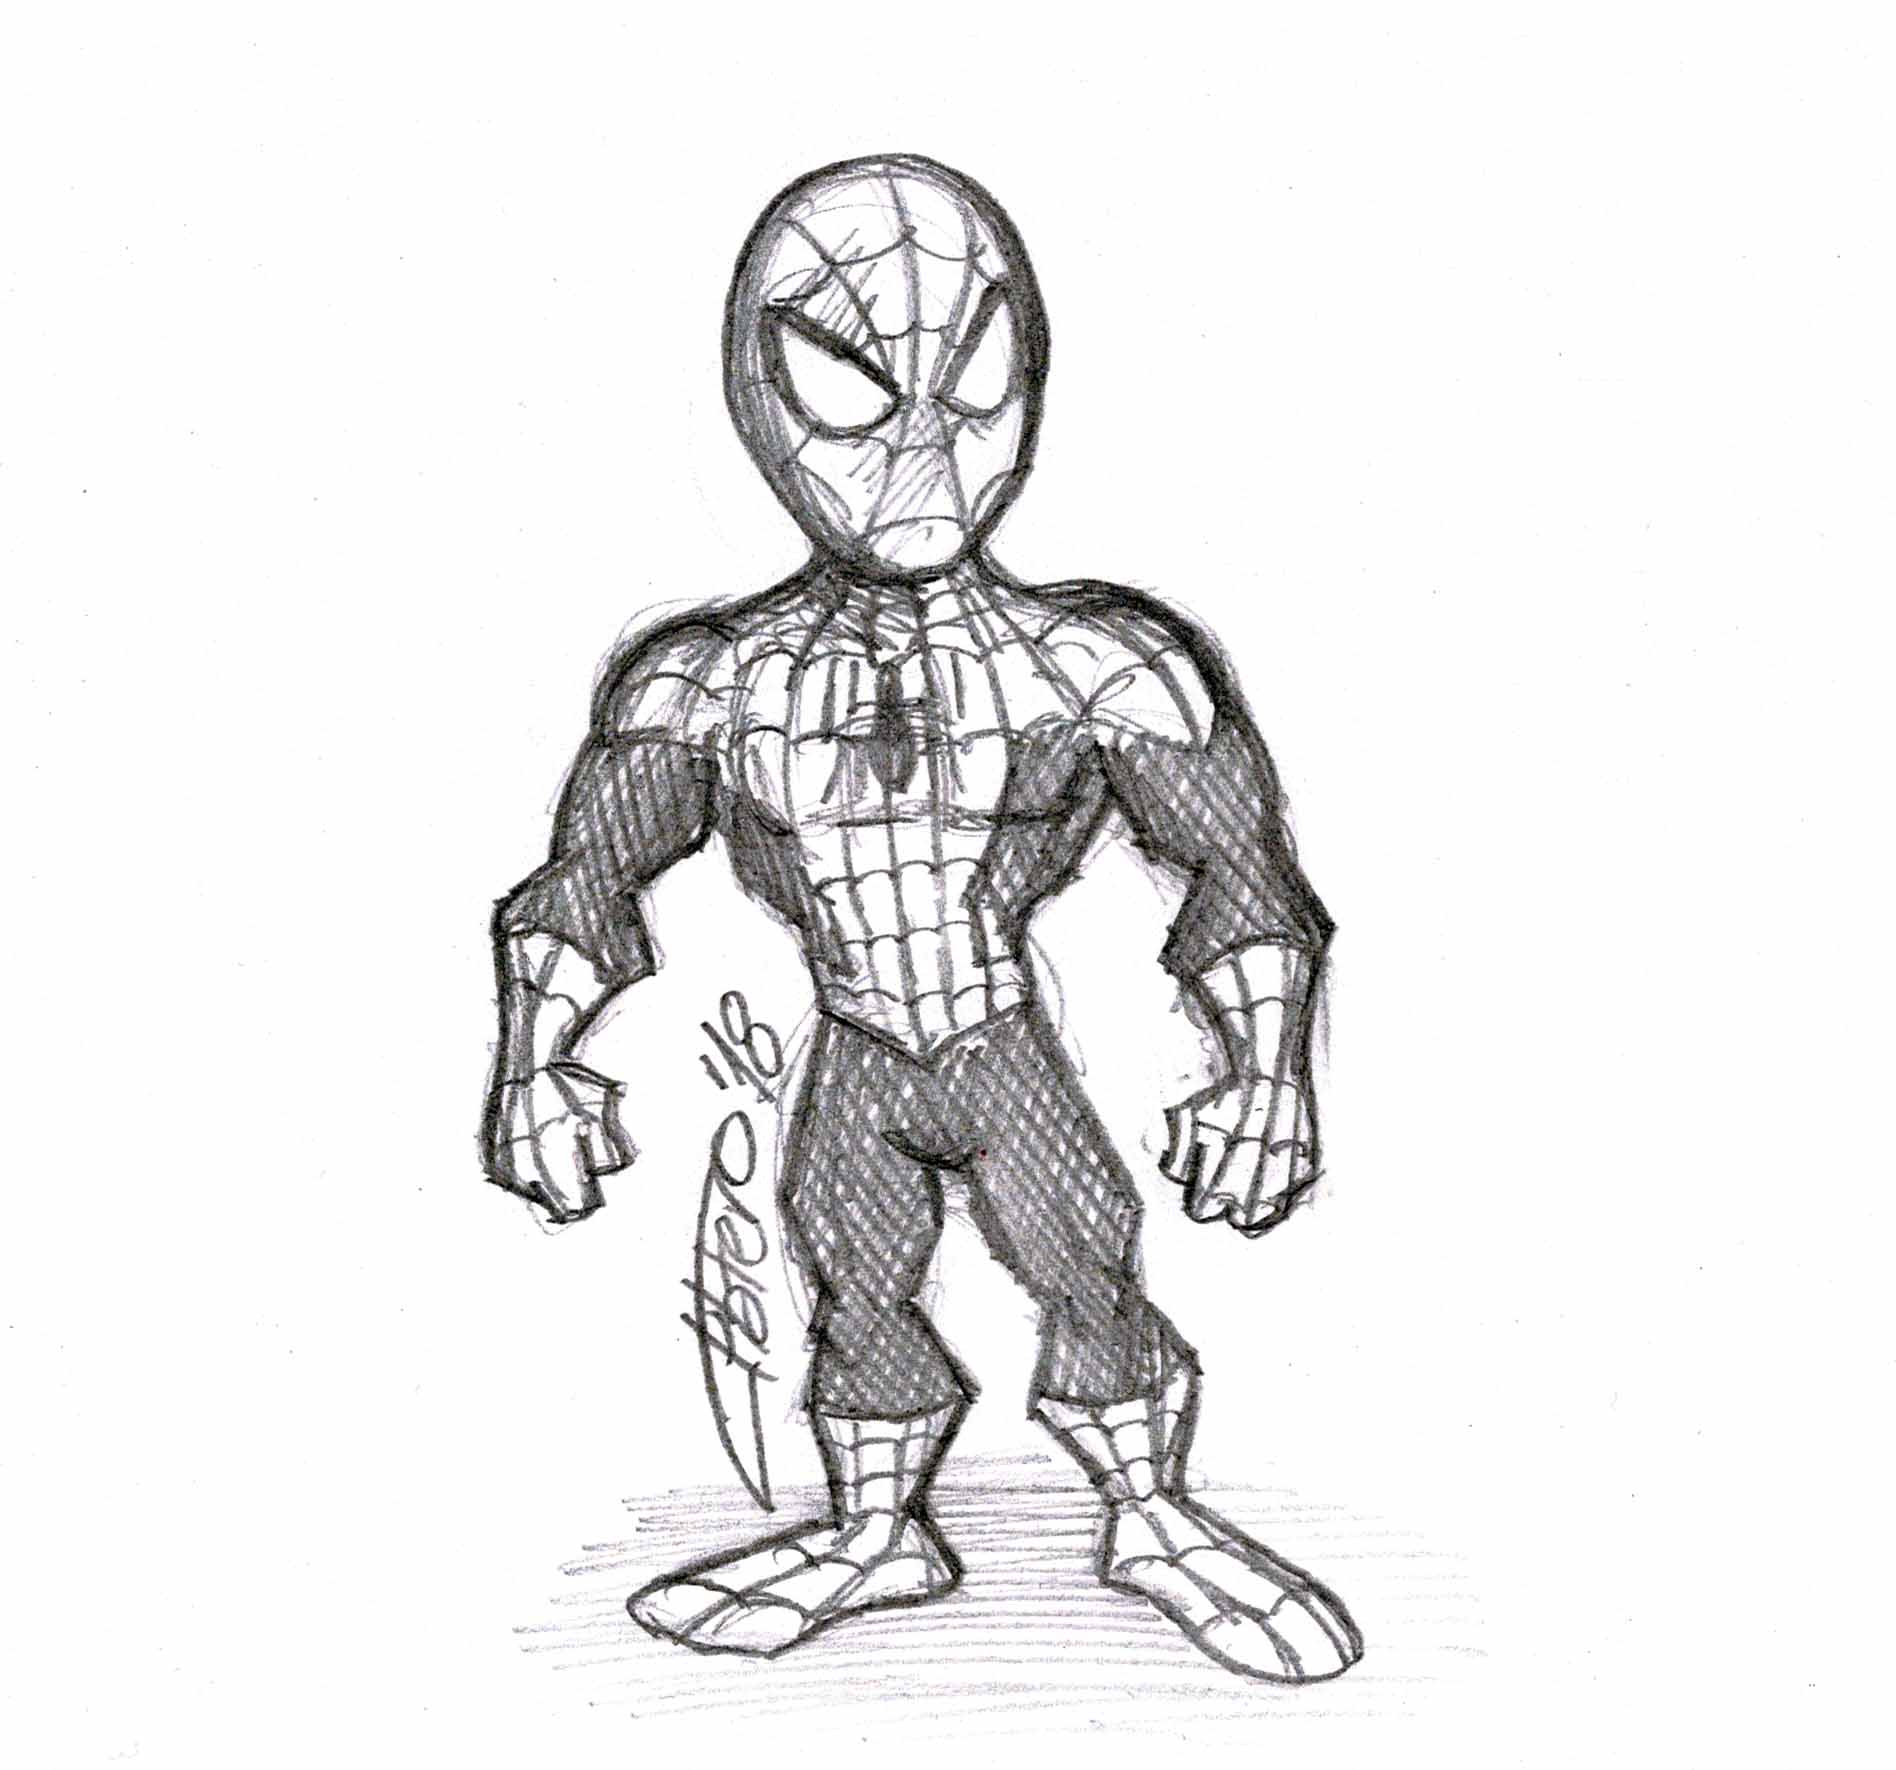 spiderman_jose_luis_platero_sketch_dibujo_caricatura_cartoon